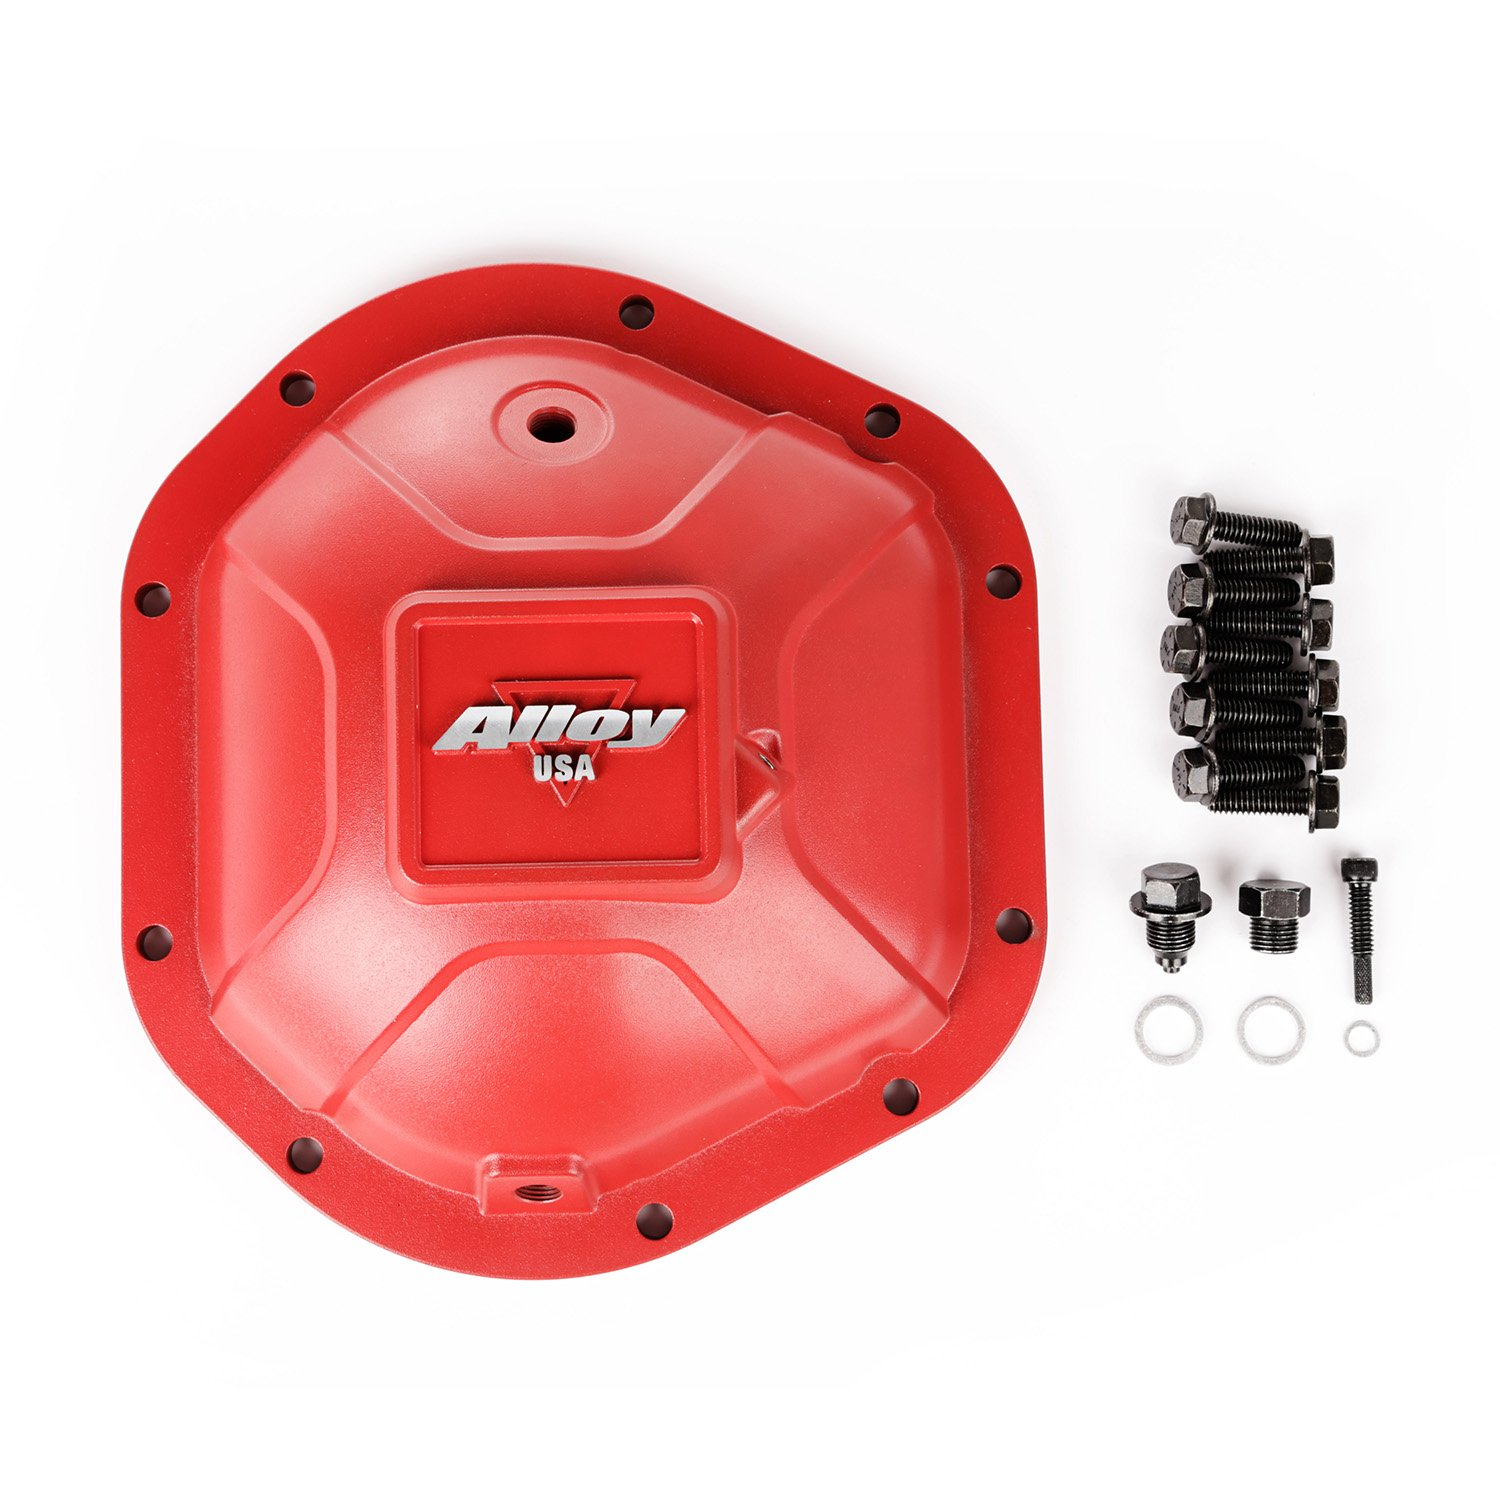 Outland 11212 Red Aluminum Differential Cover for Dana 44, 1 Pack